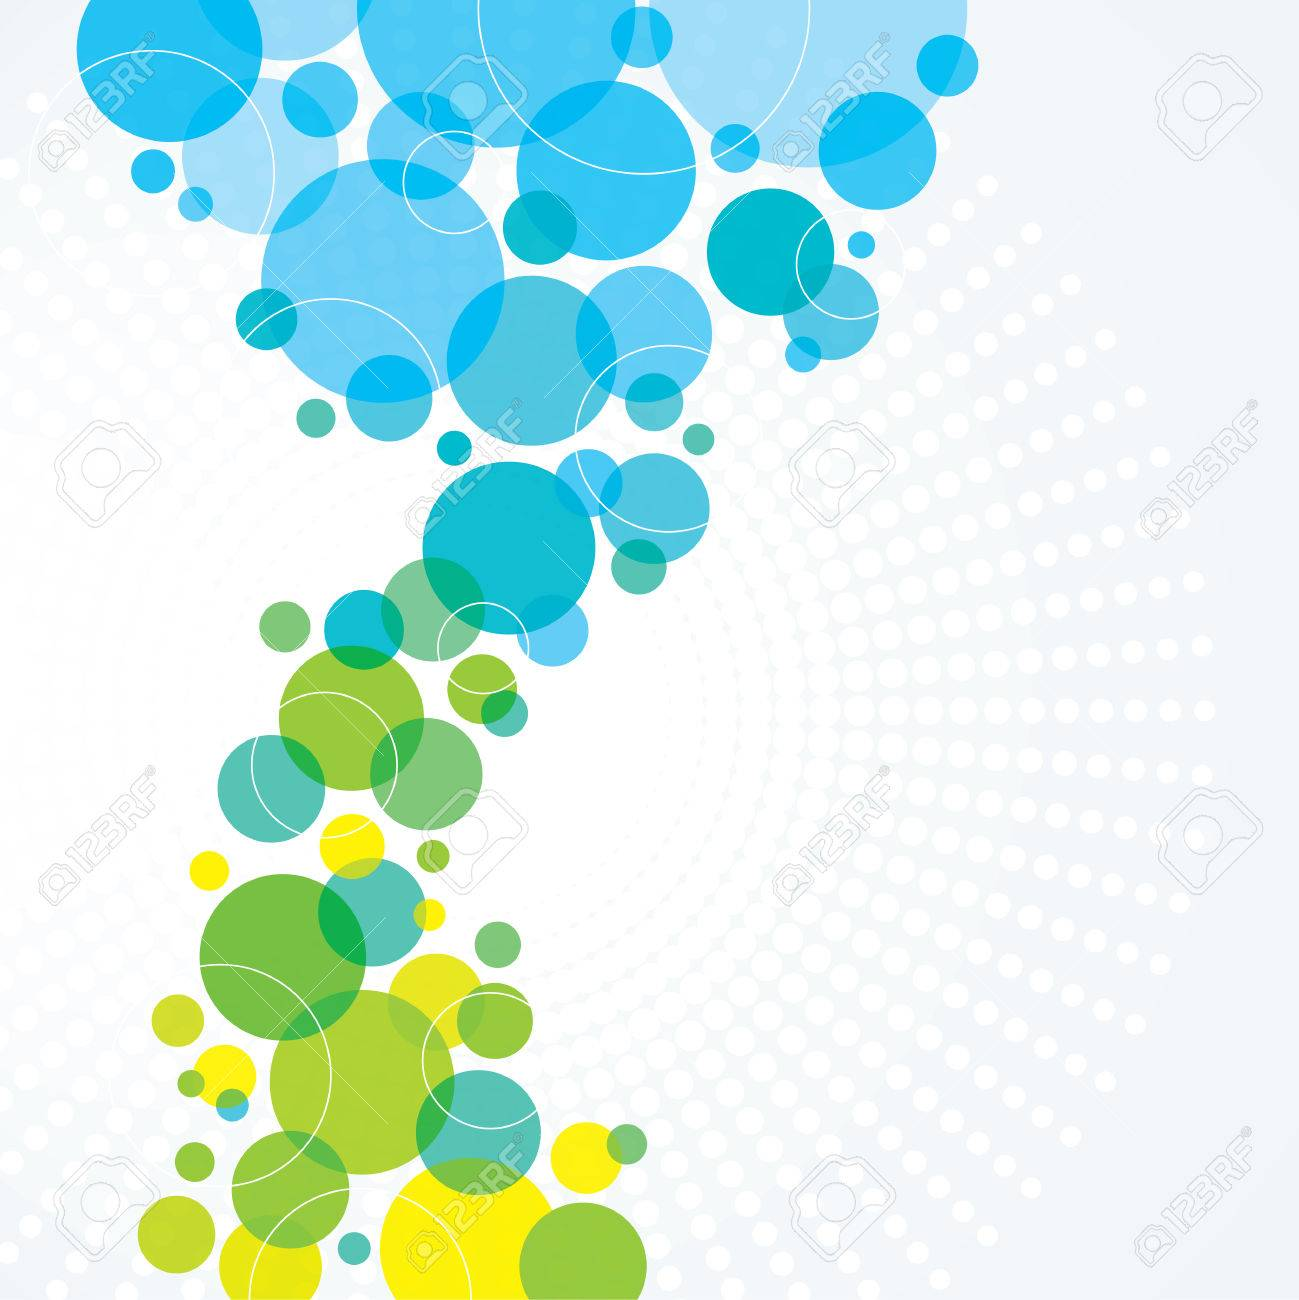 A Blue And Green Abstract Background Design With Circles